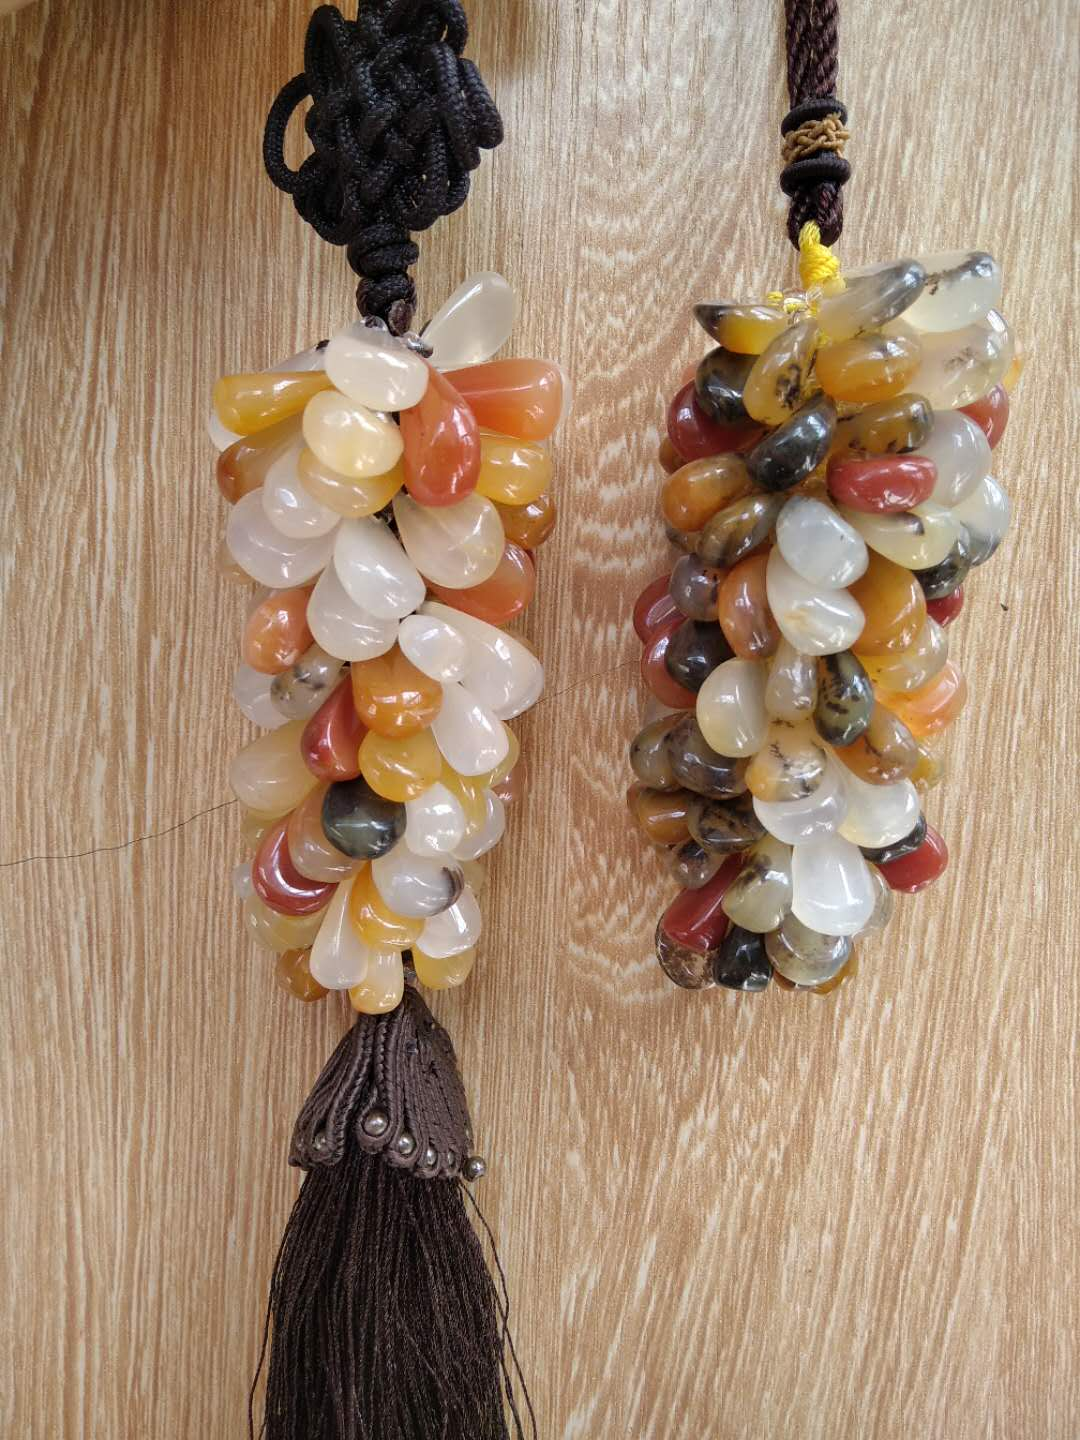 Huanglong jade car chain Wrapping chain gift birthday present lovers gift Natural stone Items with Chinese characteristics